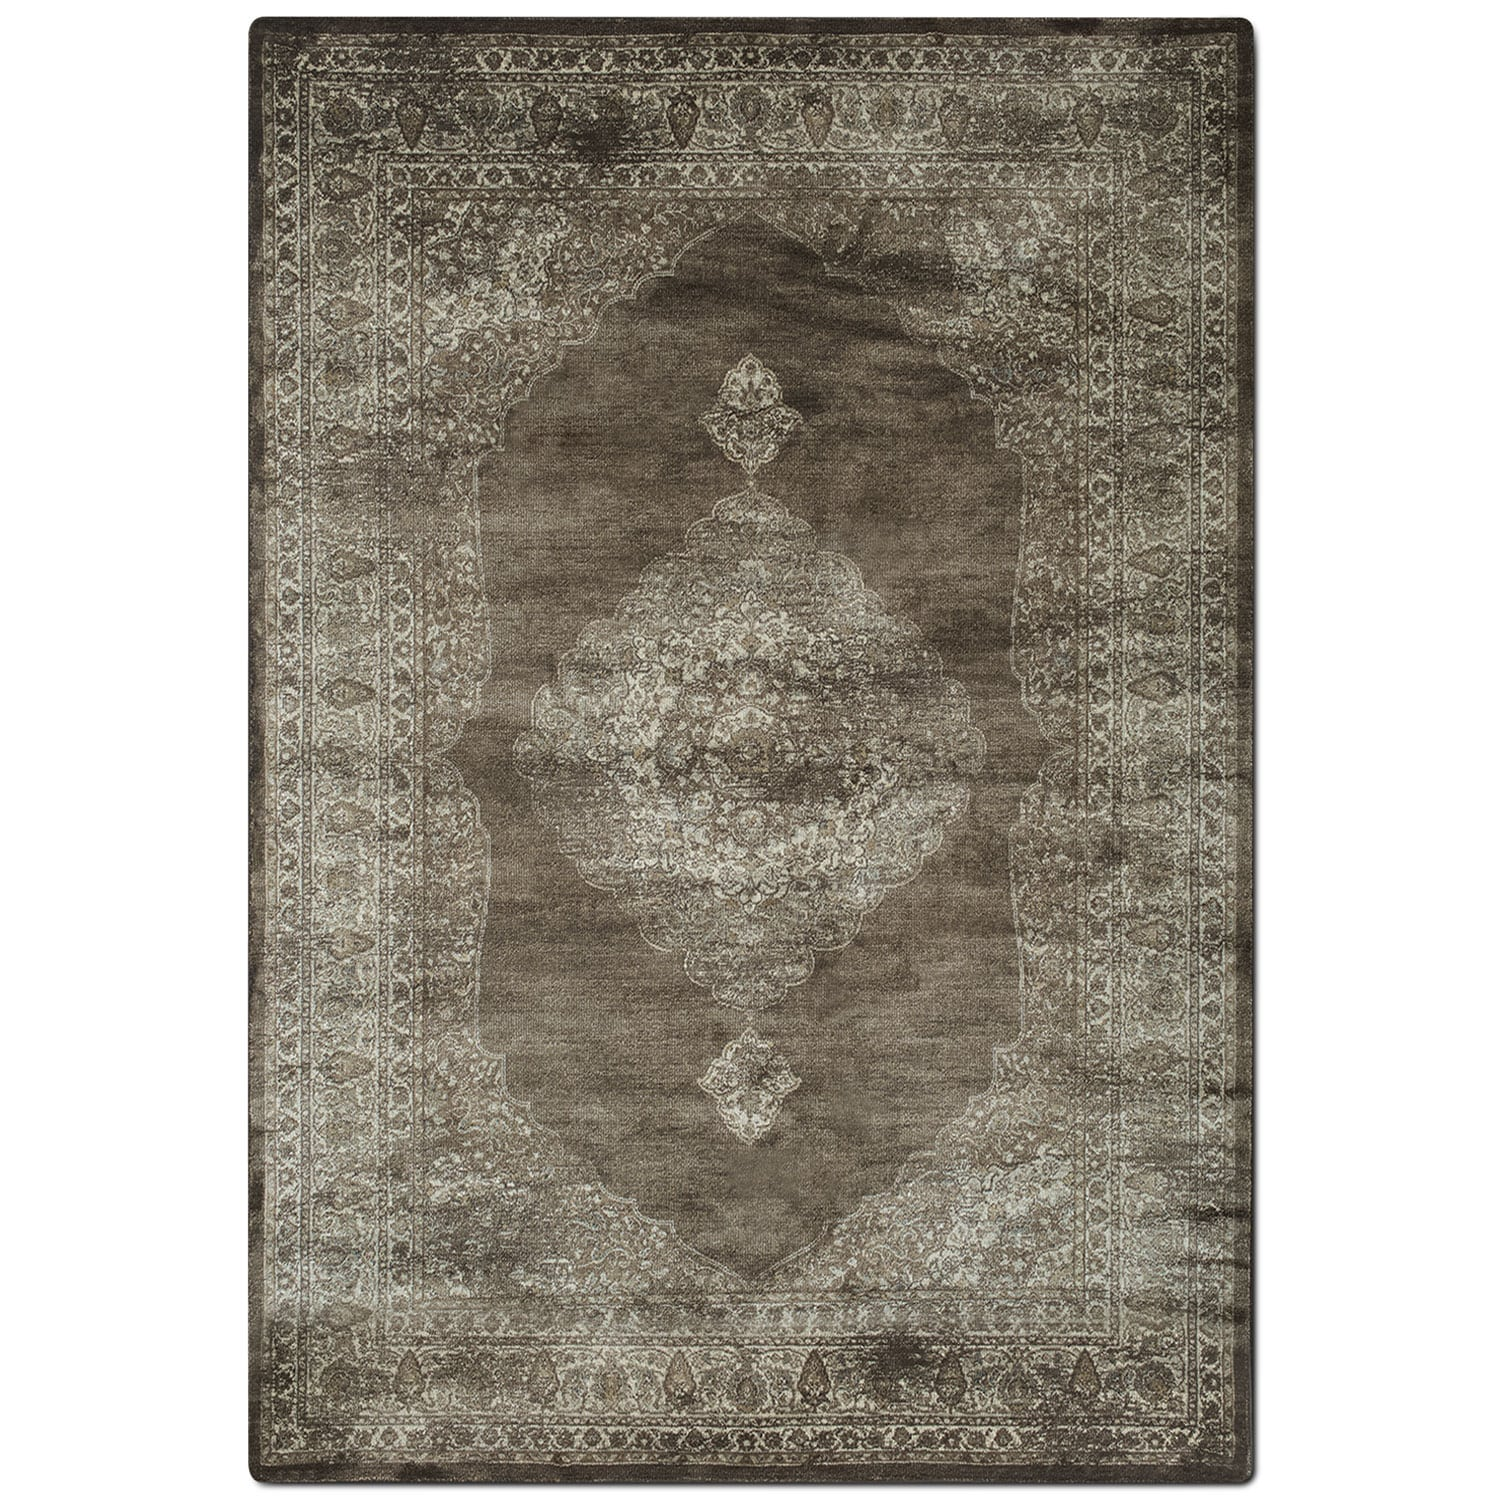 Rugs - Sonoma 5' x 8' Area Rug - Ivory and Beige